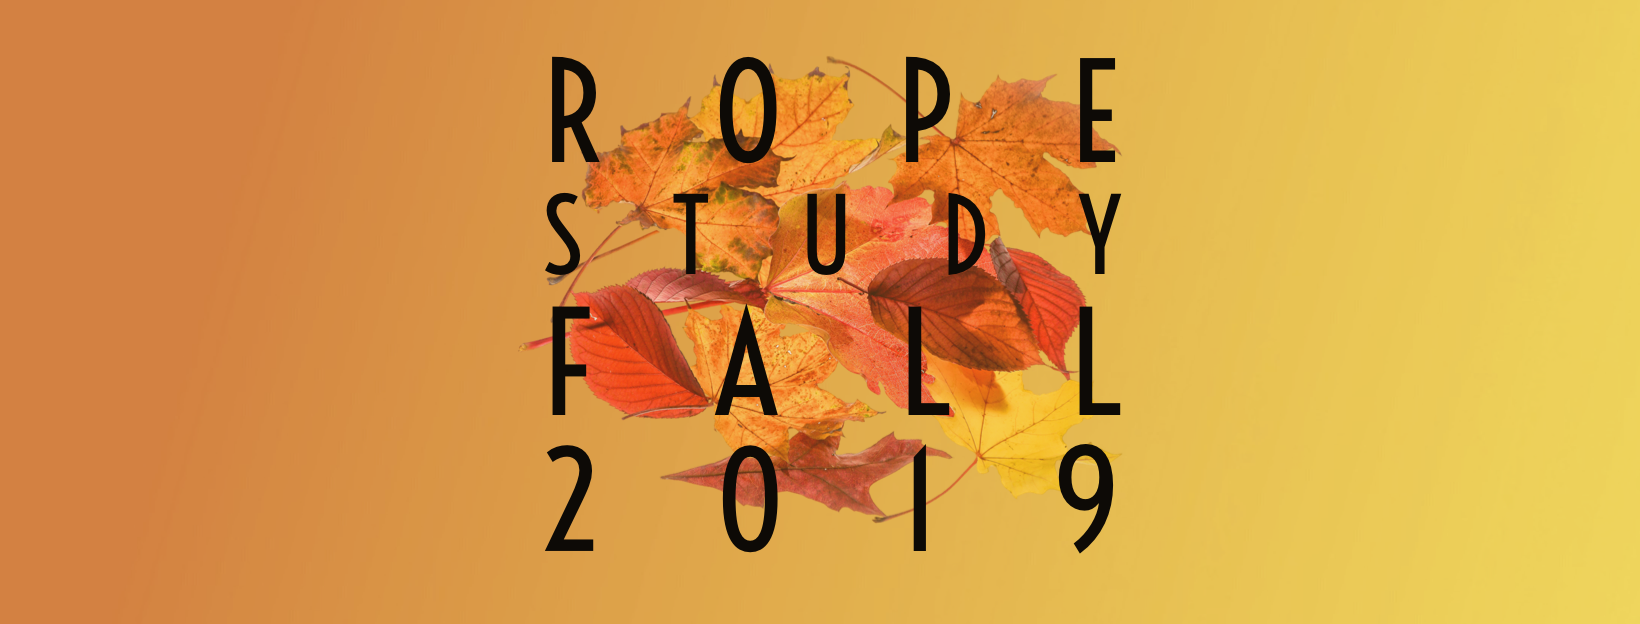 Applications Open for Rope Study Classes!